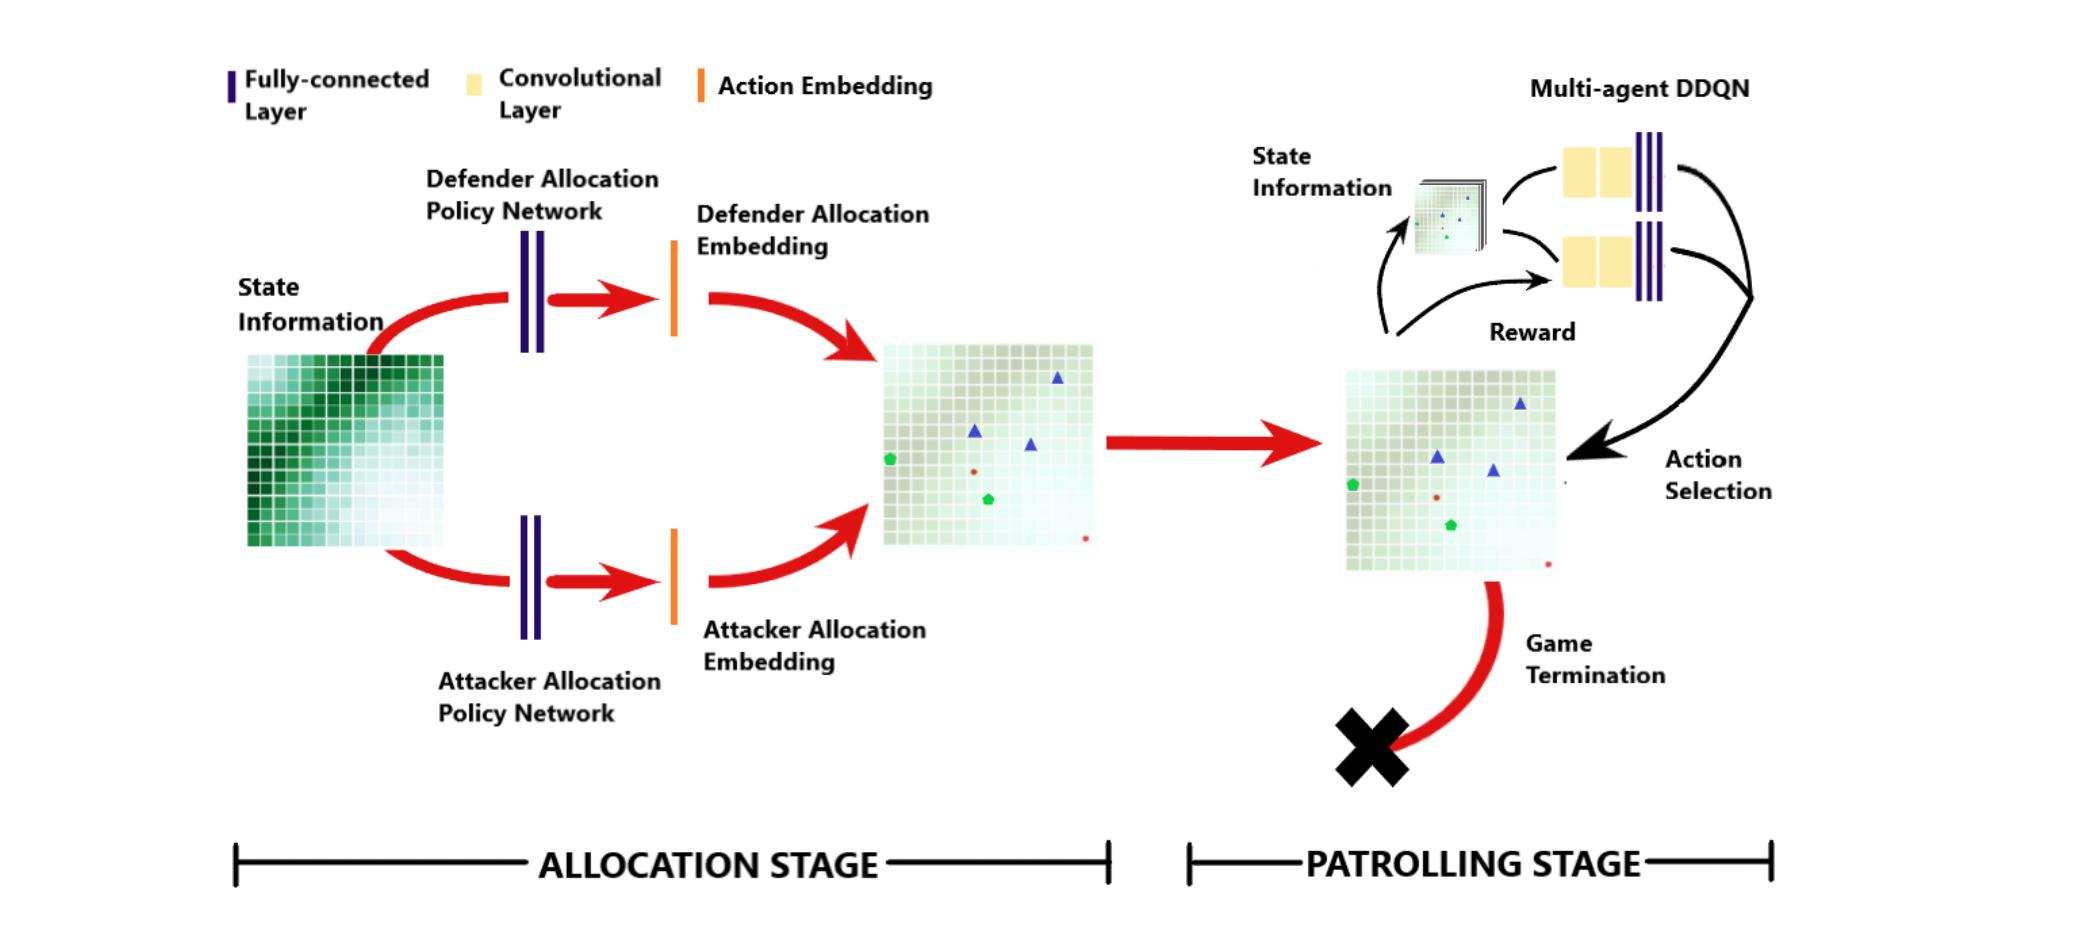 Reinforcement Learning for Unified Allocation and Patrolling in Signaling Games with Uncertainty